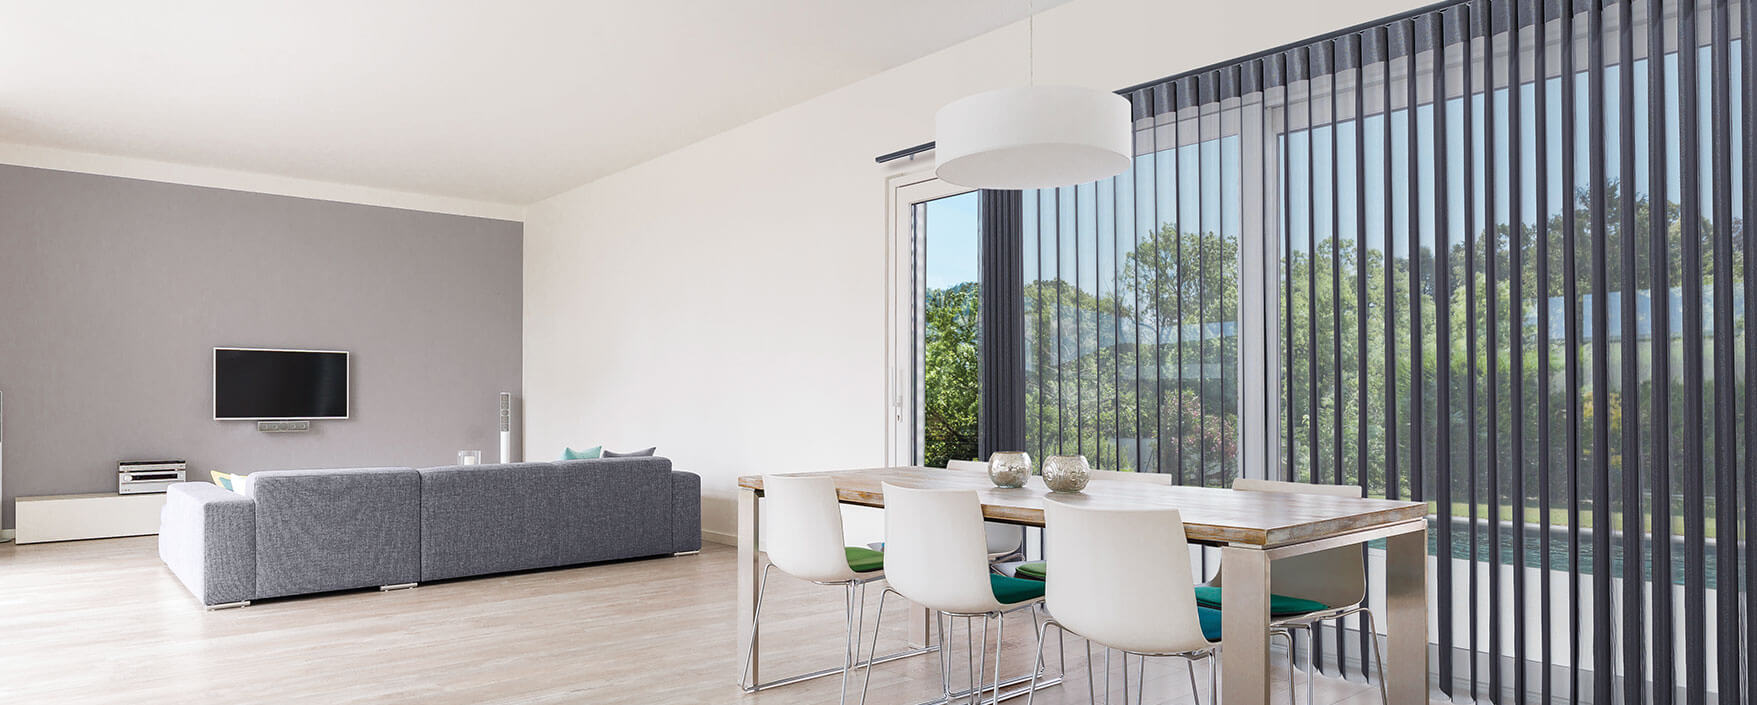 Luxaflex - Products - Blinds - Veri Shades Inspiring Image